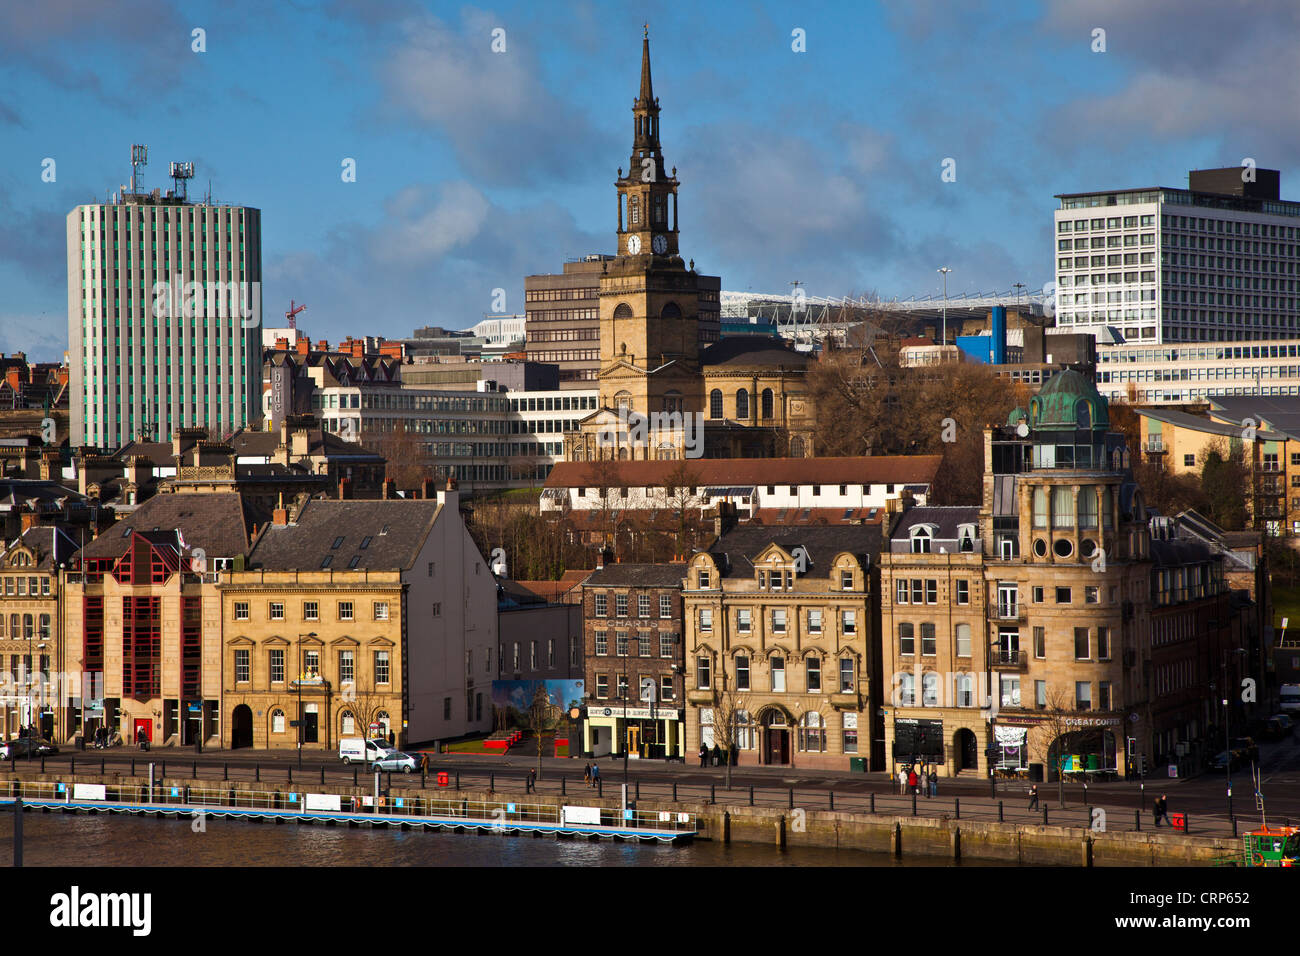 Newcastle Quayside on the north bank of the River Tyne. - Stock Image